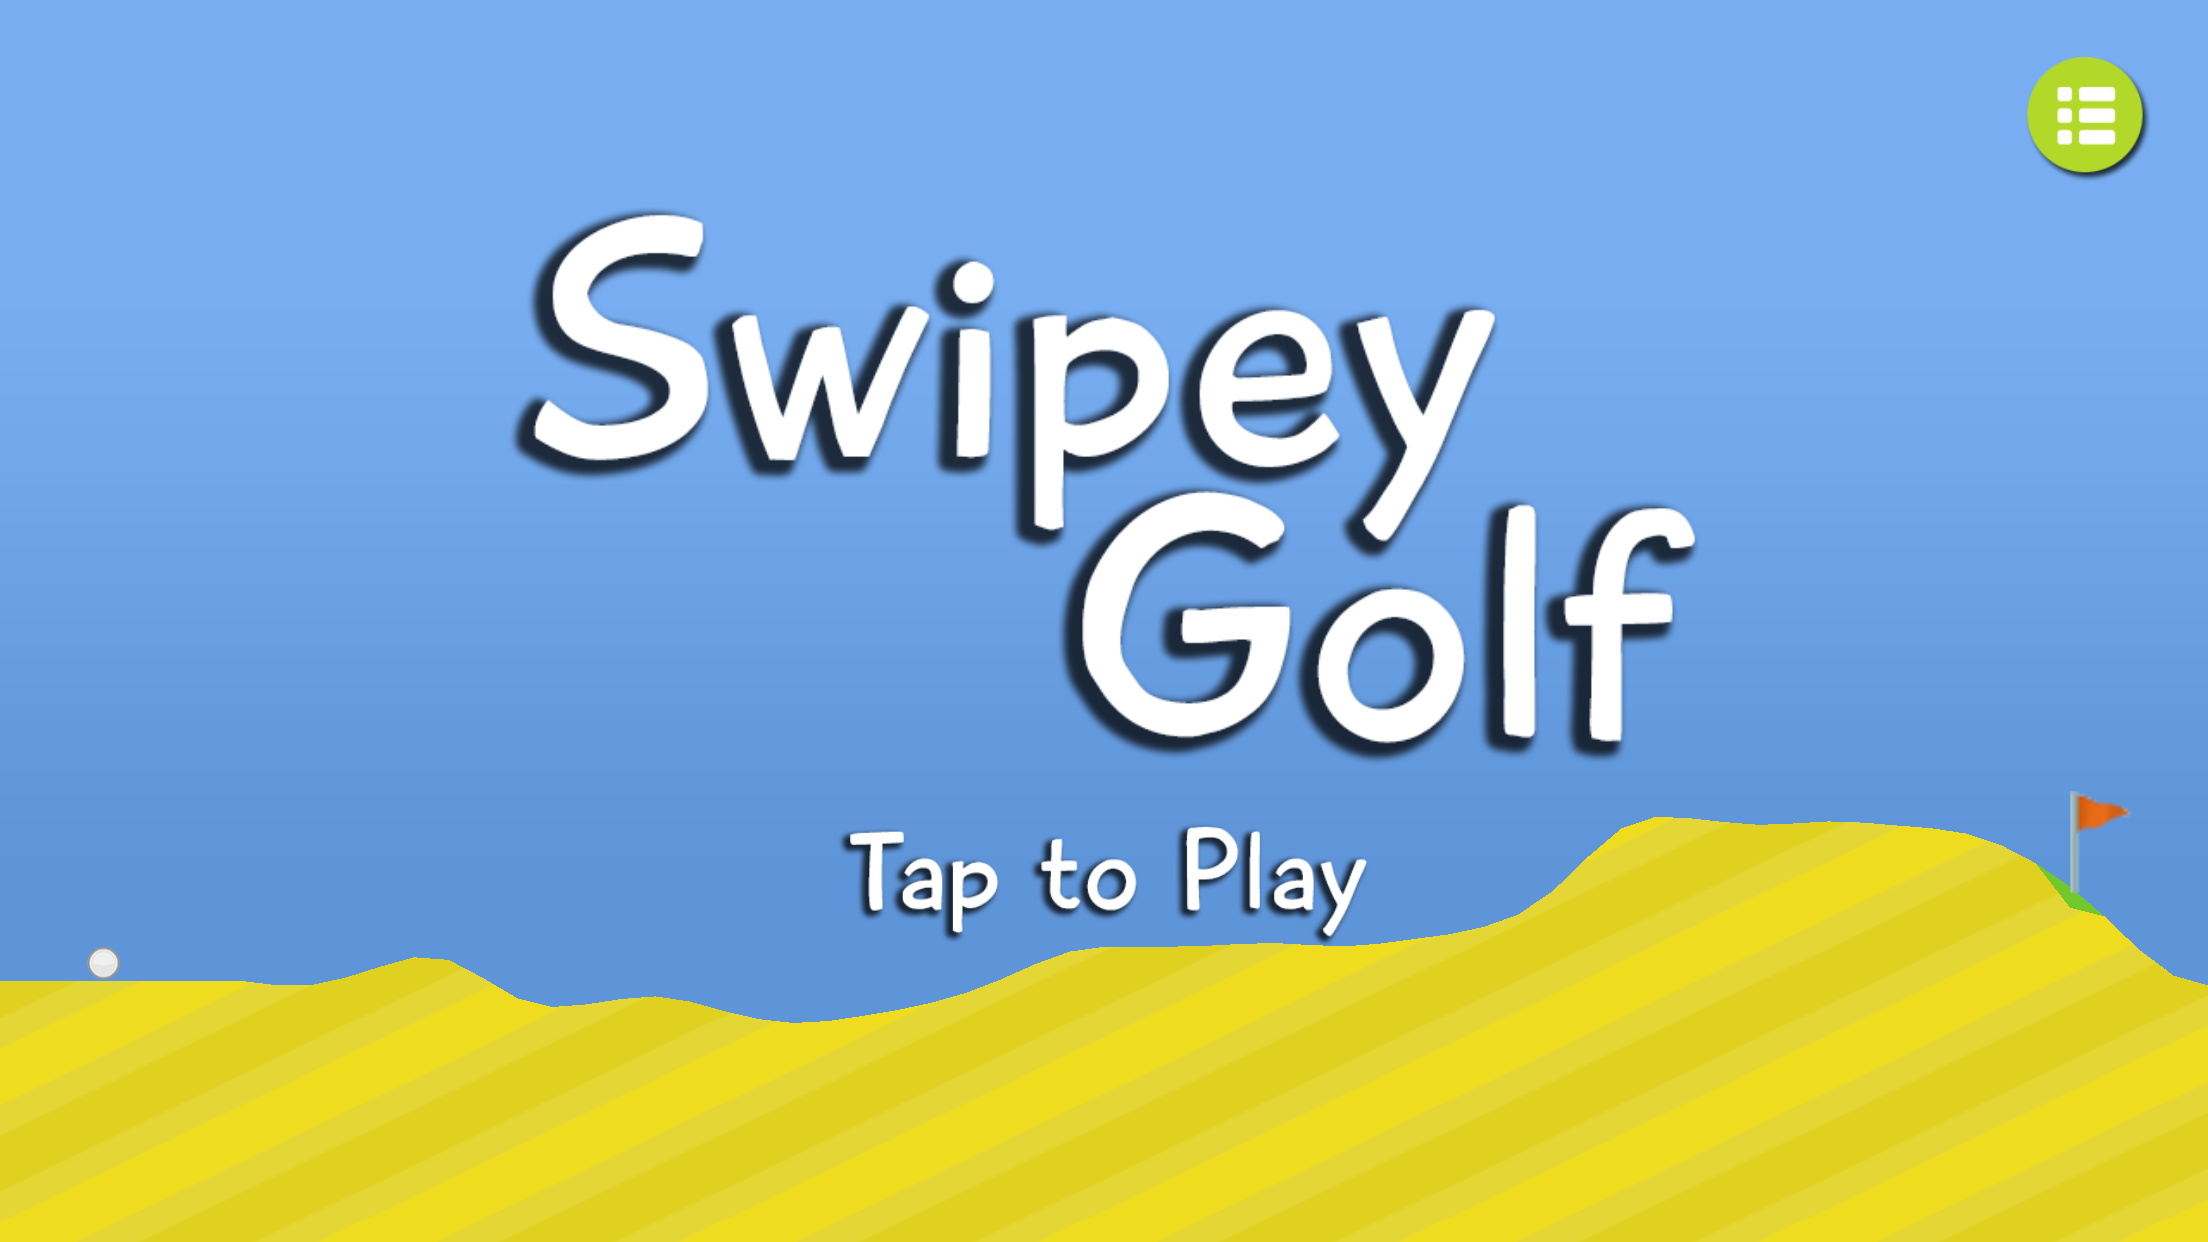 Swipey Golf home screen